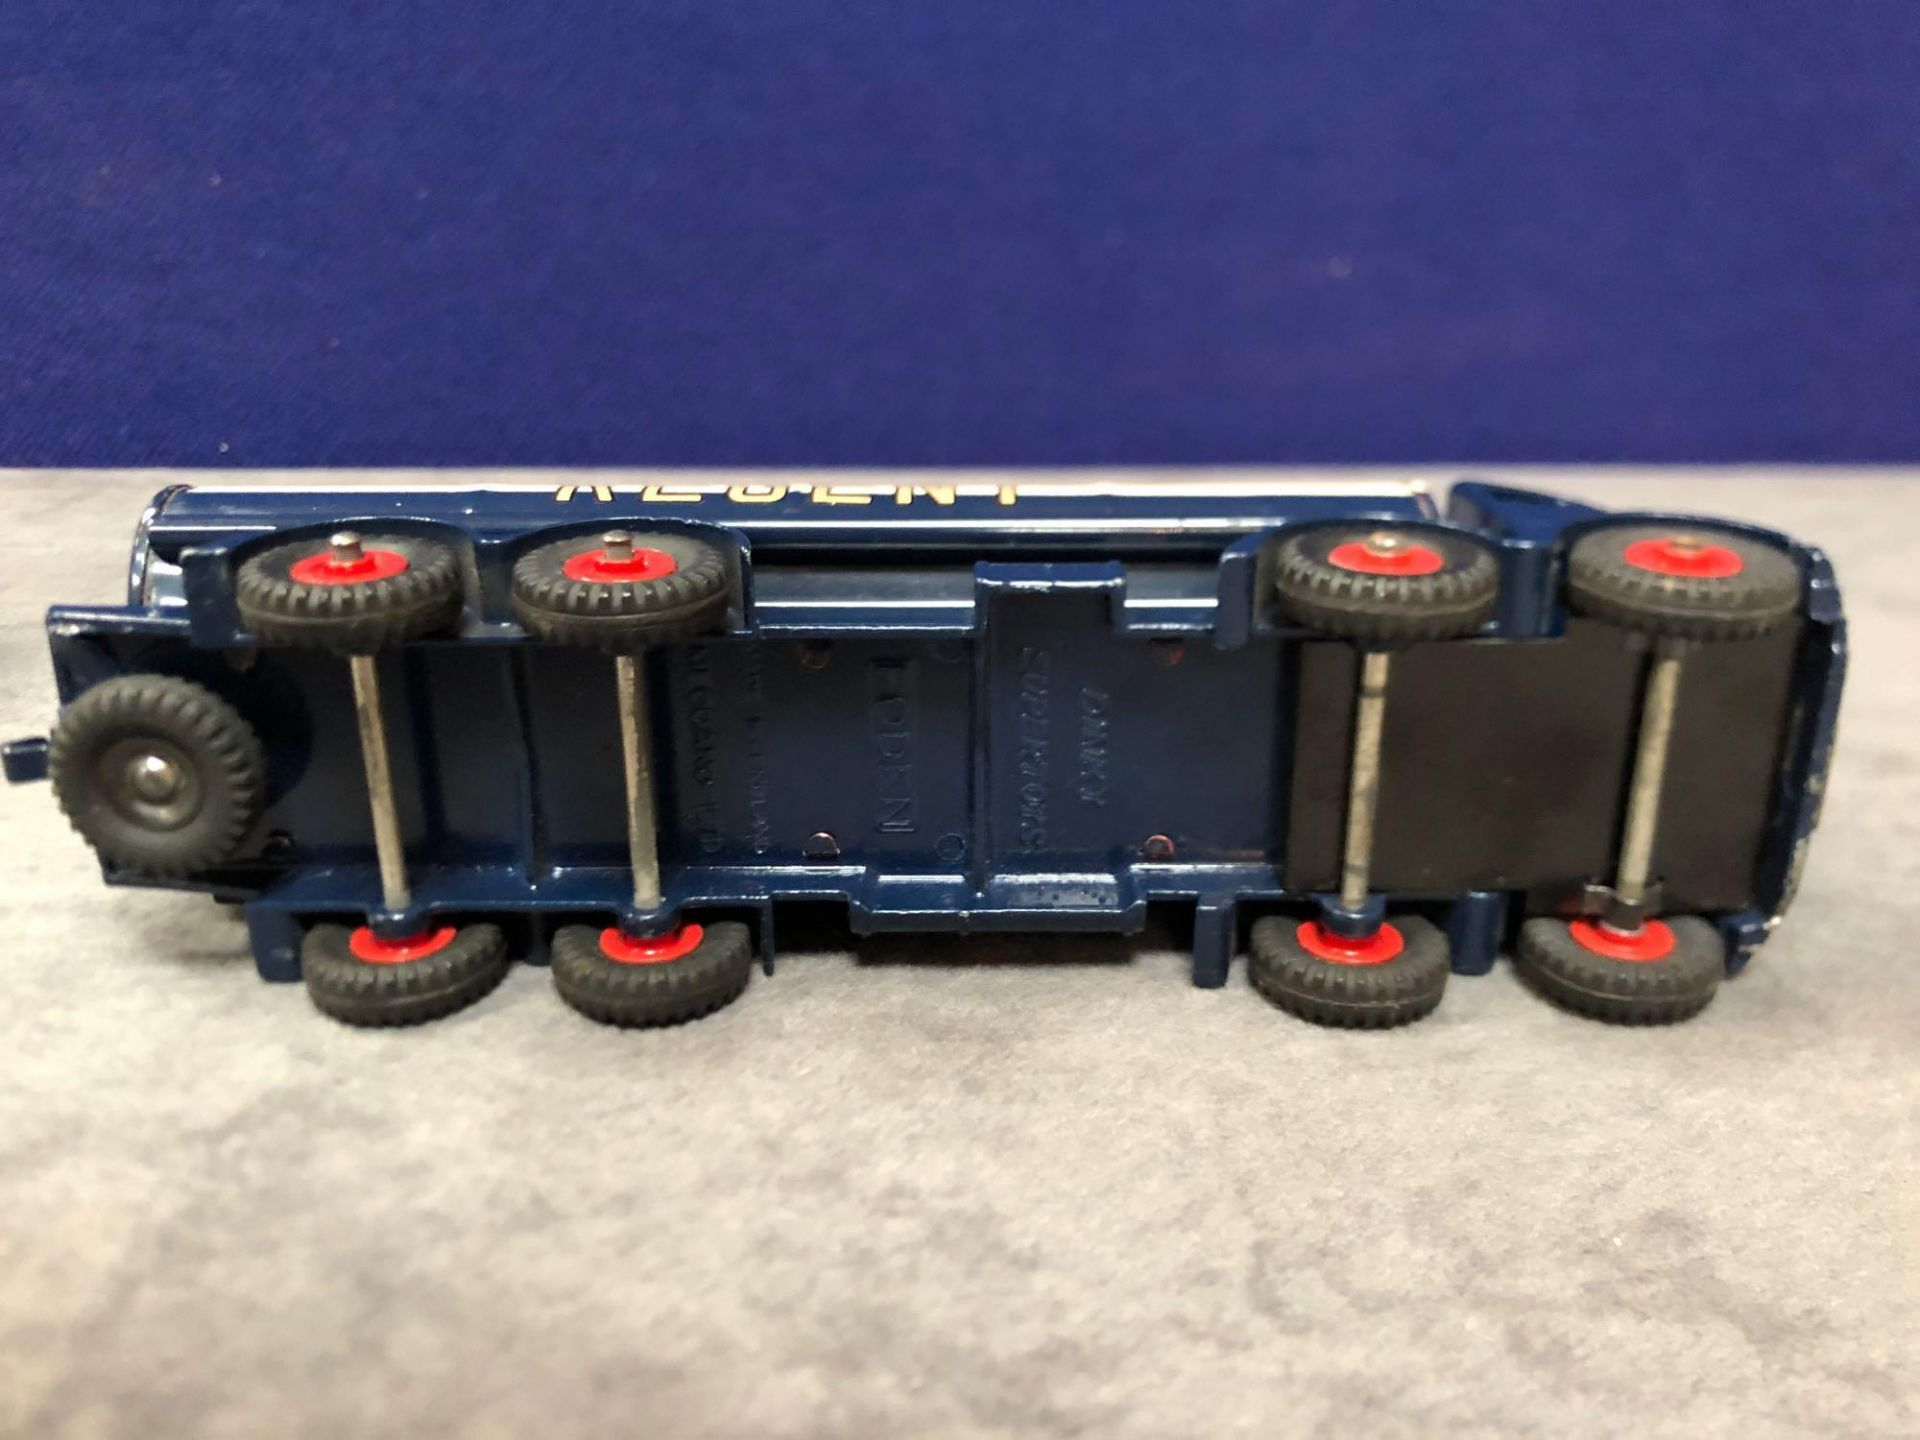 Dinky Super Toys Diecast #942 Foden 14-Ton Tanker Regent In Excellent Condition With Bright Paint In - Image 4 of 4